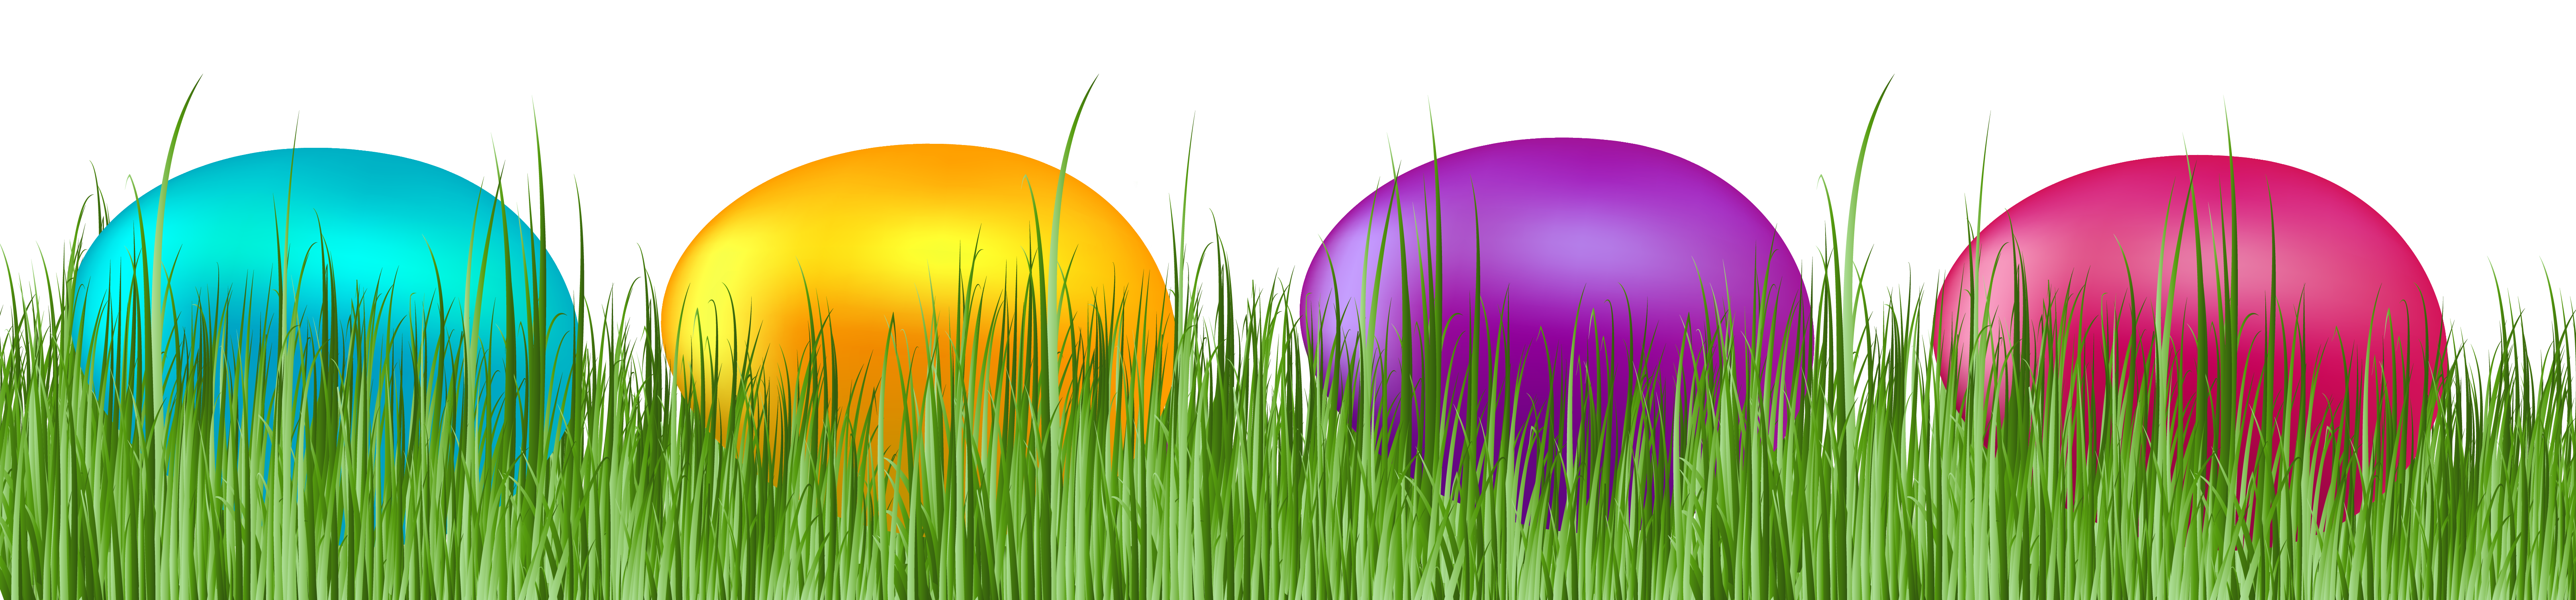 Easter grass png. With eggs transparent clip